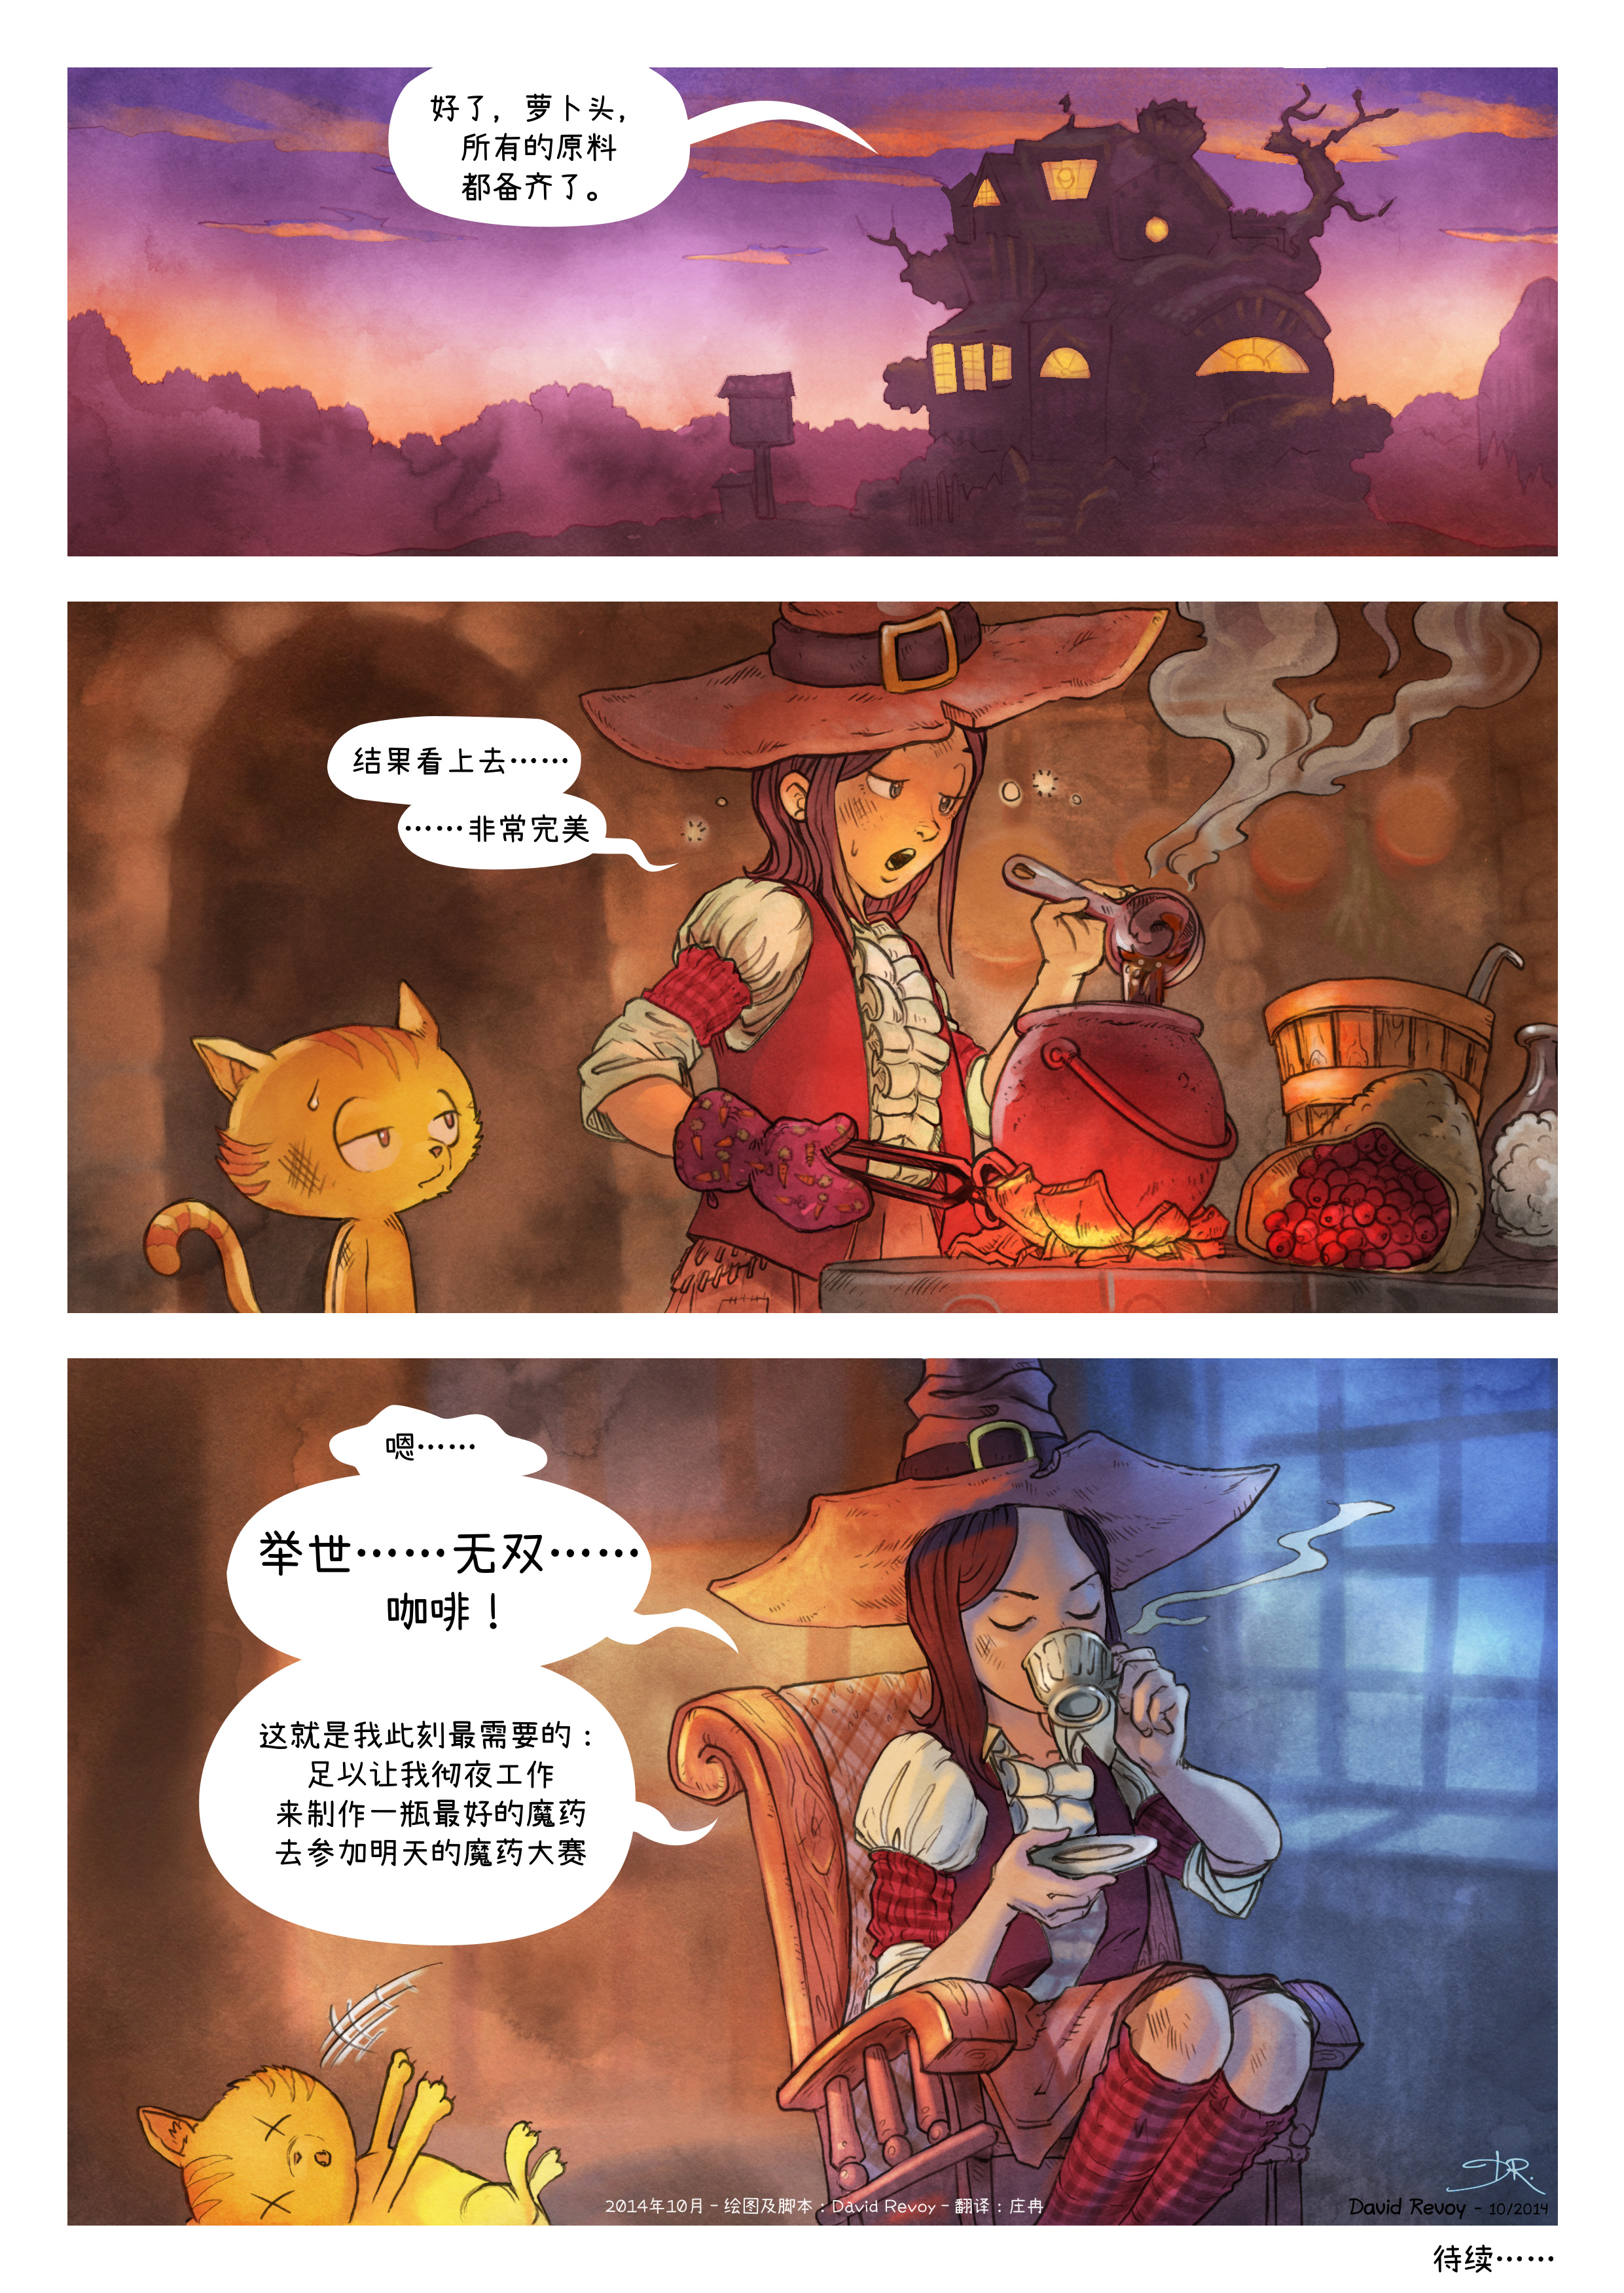 A webcomic page of Pepper&Carrot, 漫画全集 3 [cn], 页面 7